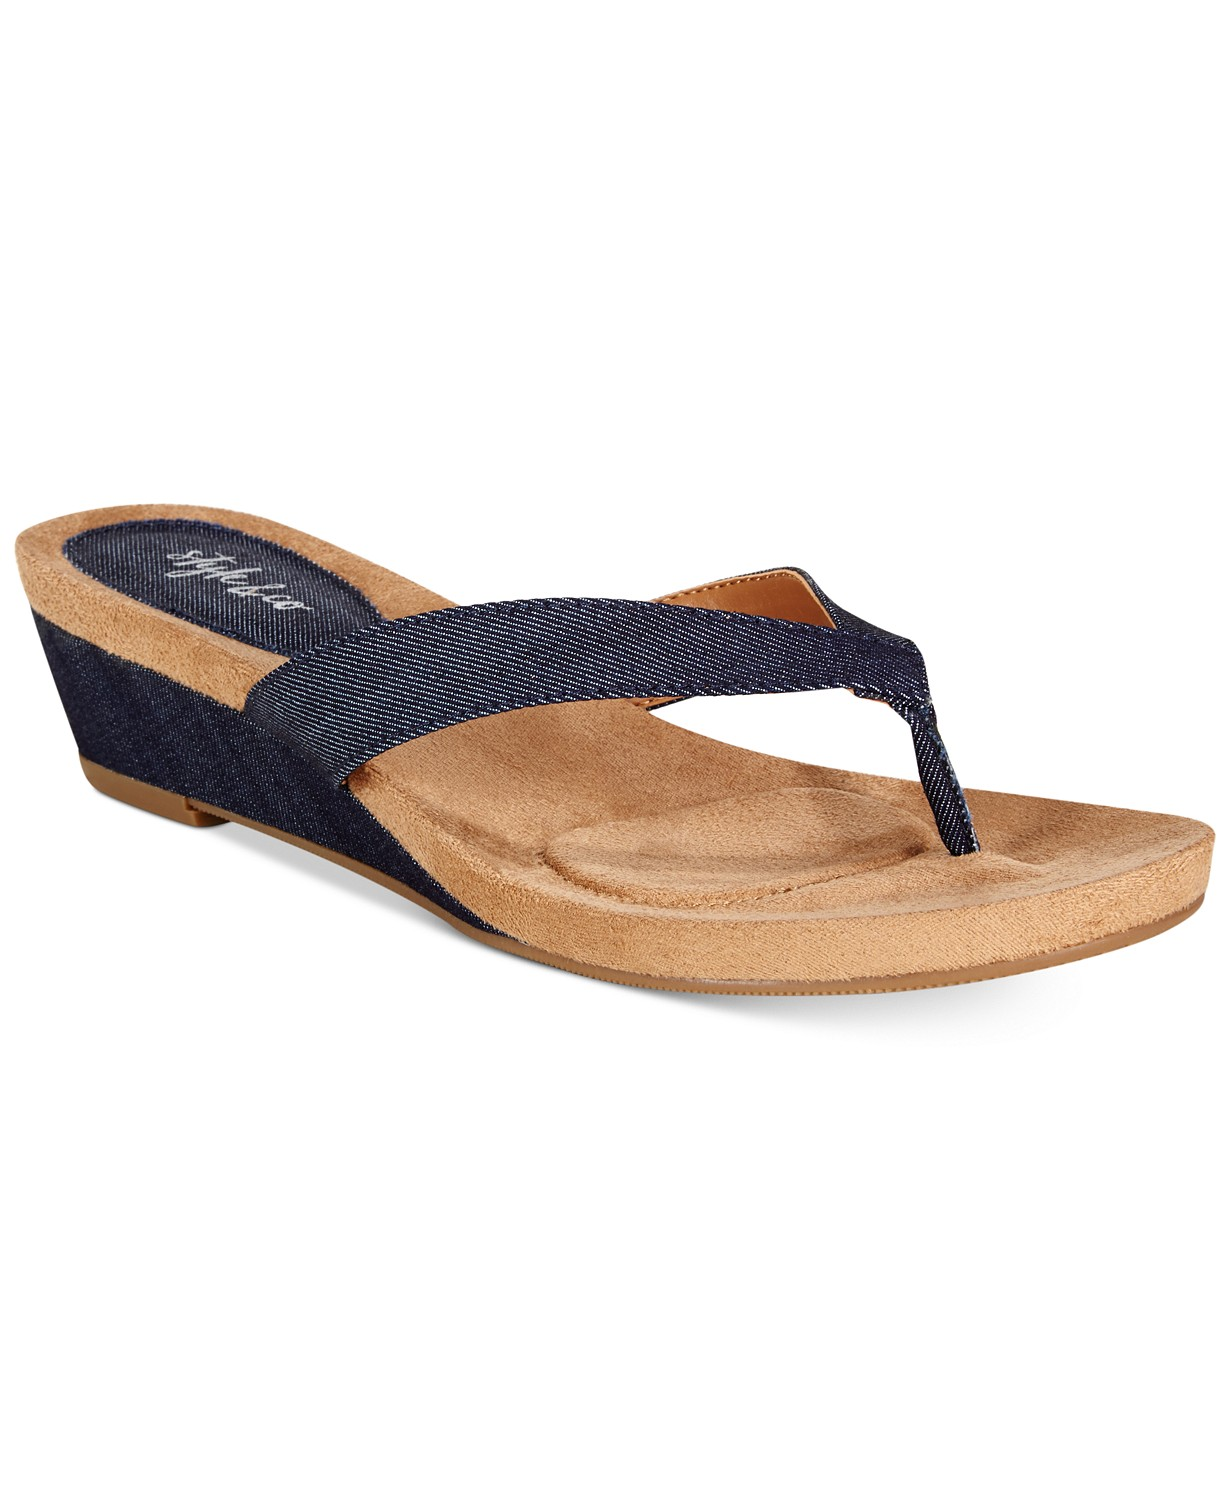 Style & Co Haloe Wedge Thong Women's Sandals